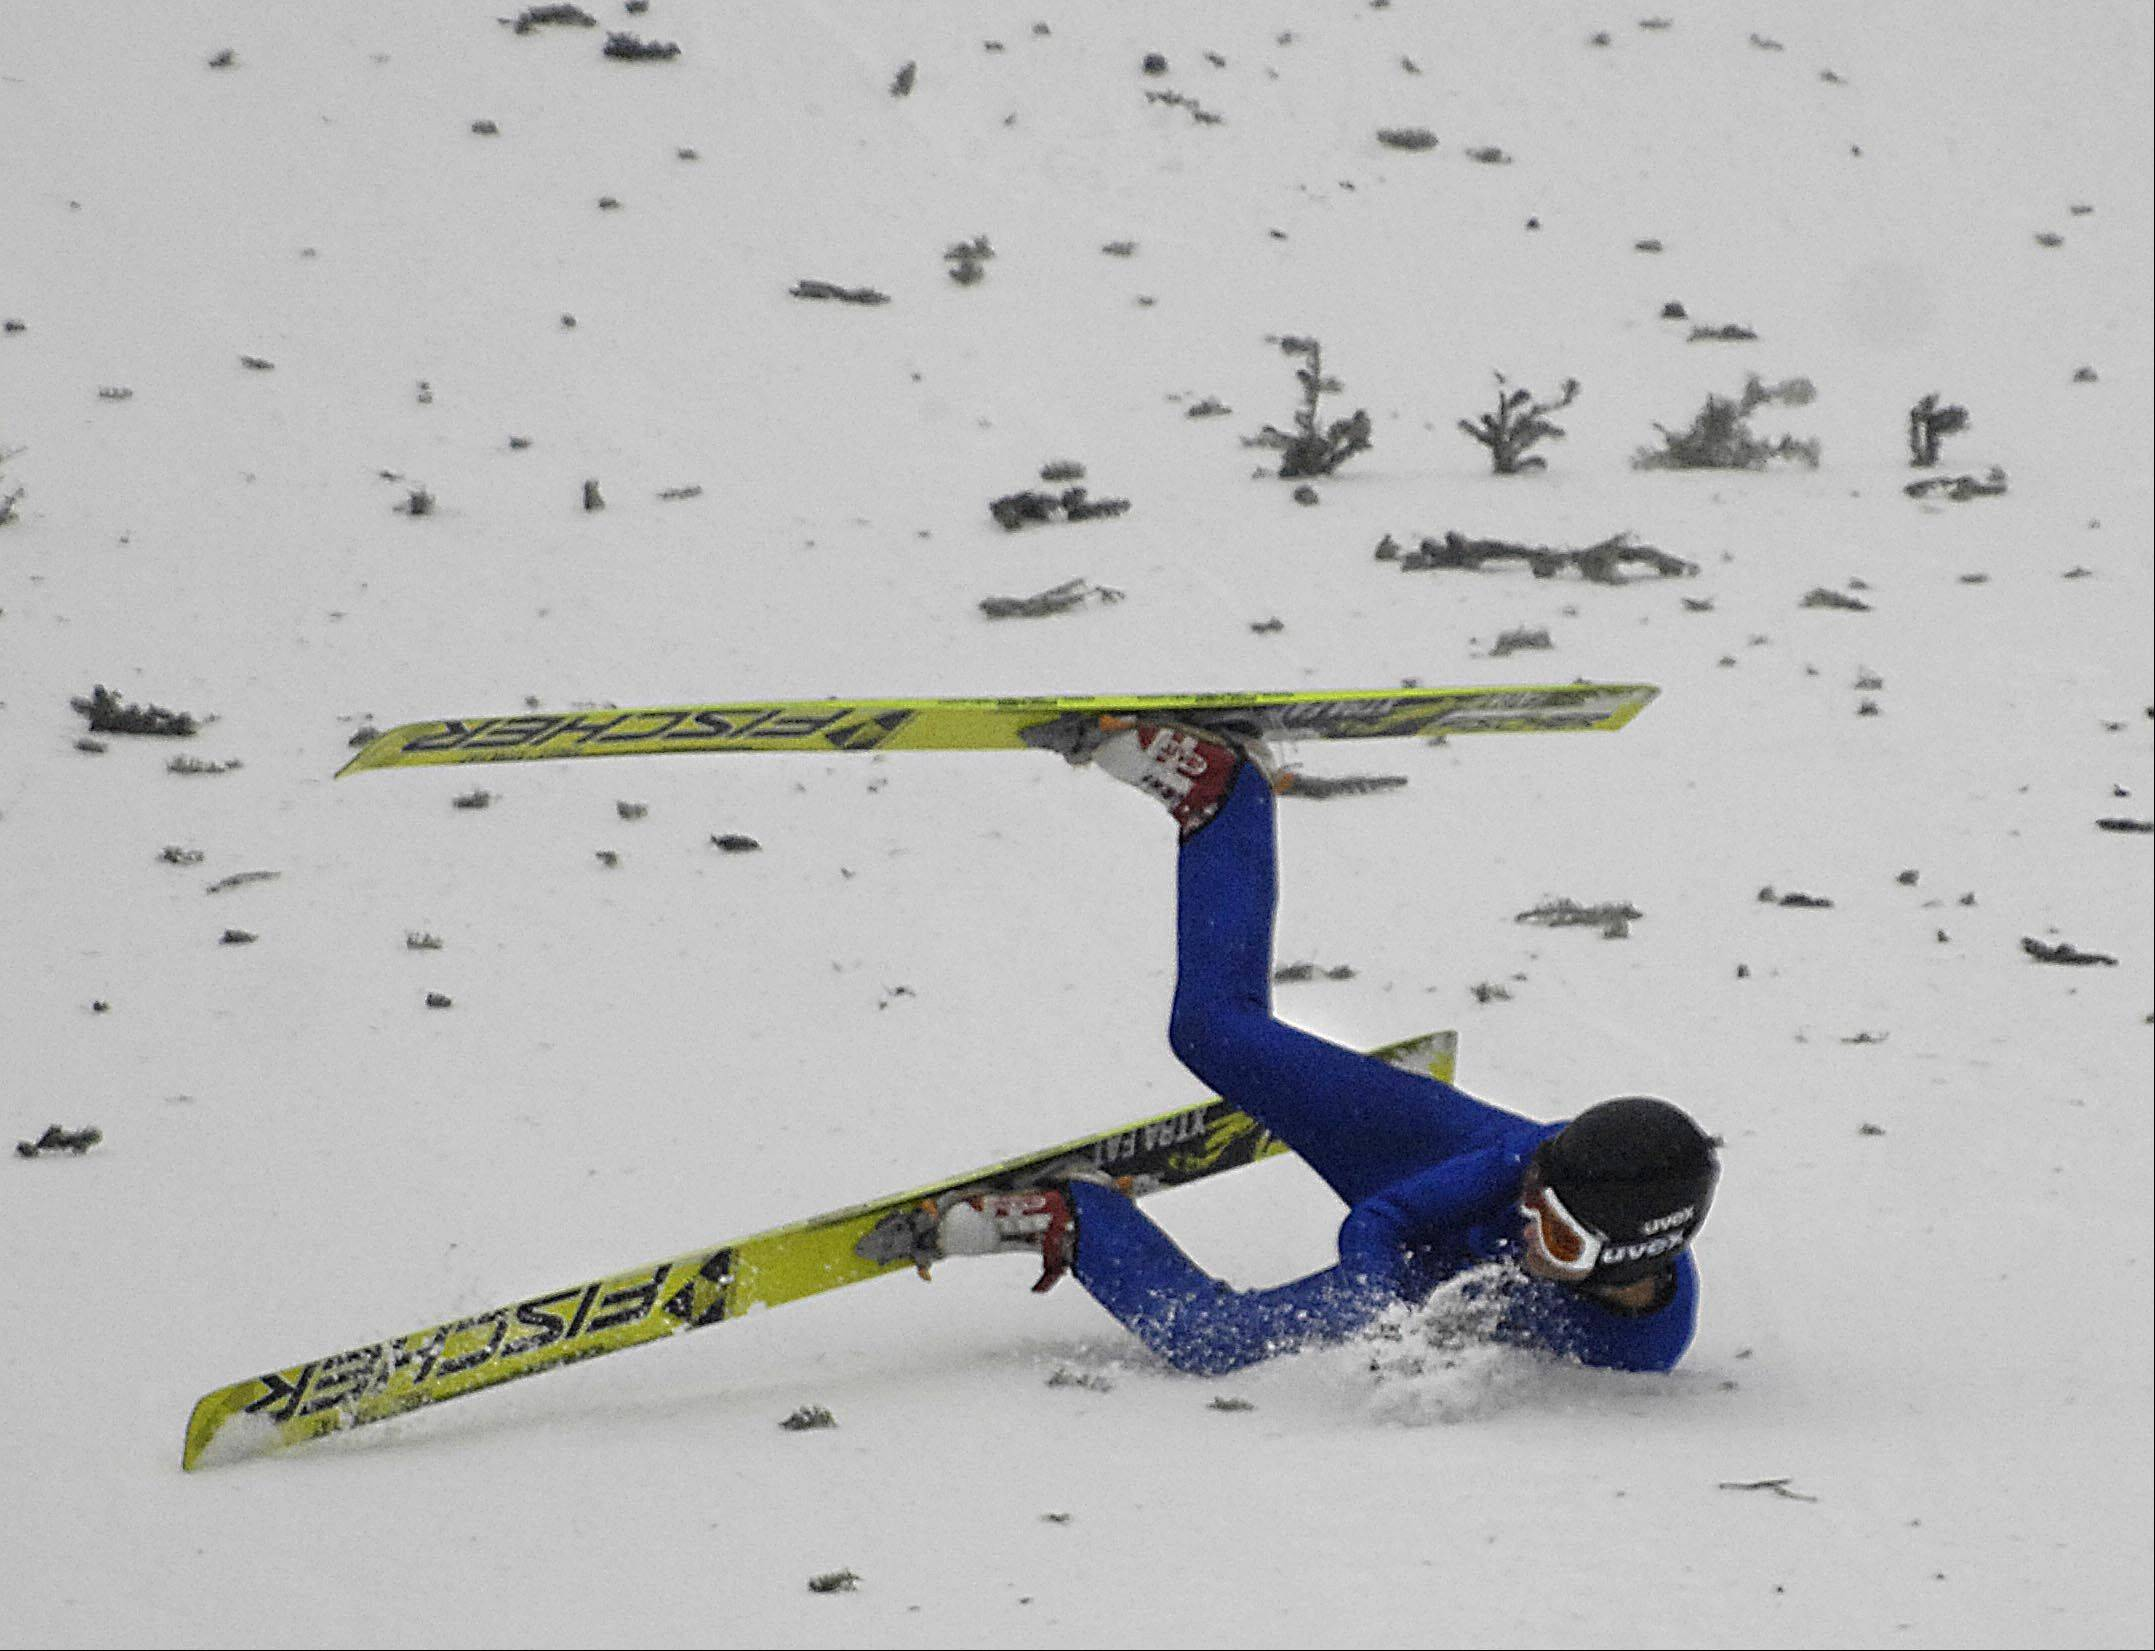 Rolf Ole Sommerstad, of Norway, tumbles to a stop after falling on his landing Sunday at the 108th Annual International Ski Jumping Tournament at Norge Ski Club in Fox River Grove. The pieces of pine trees are stuck in the snow to give depth and dimension to help the jumpers locate the ground.